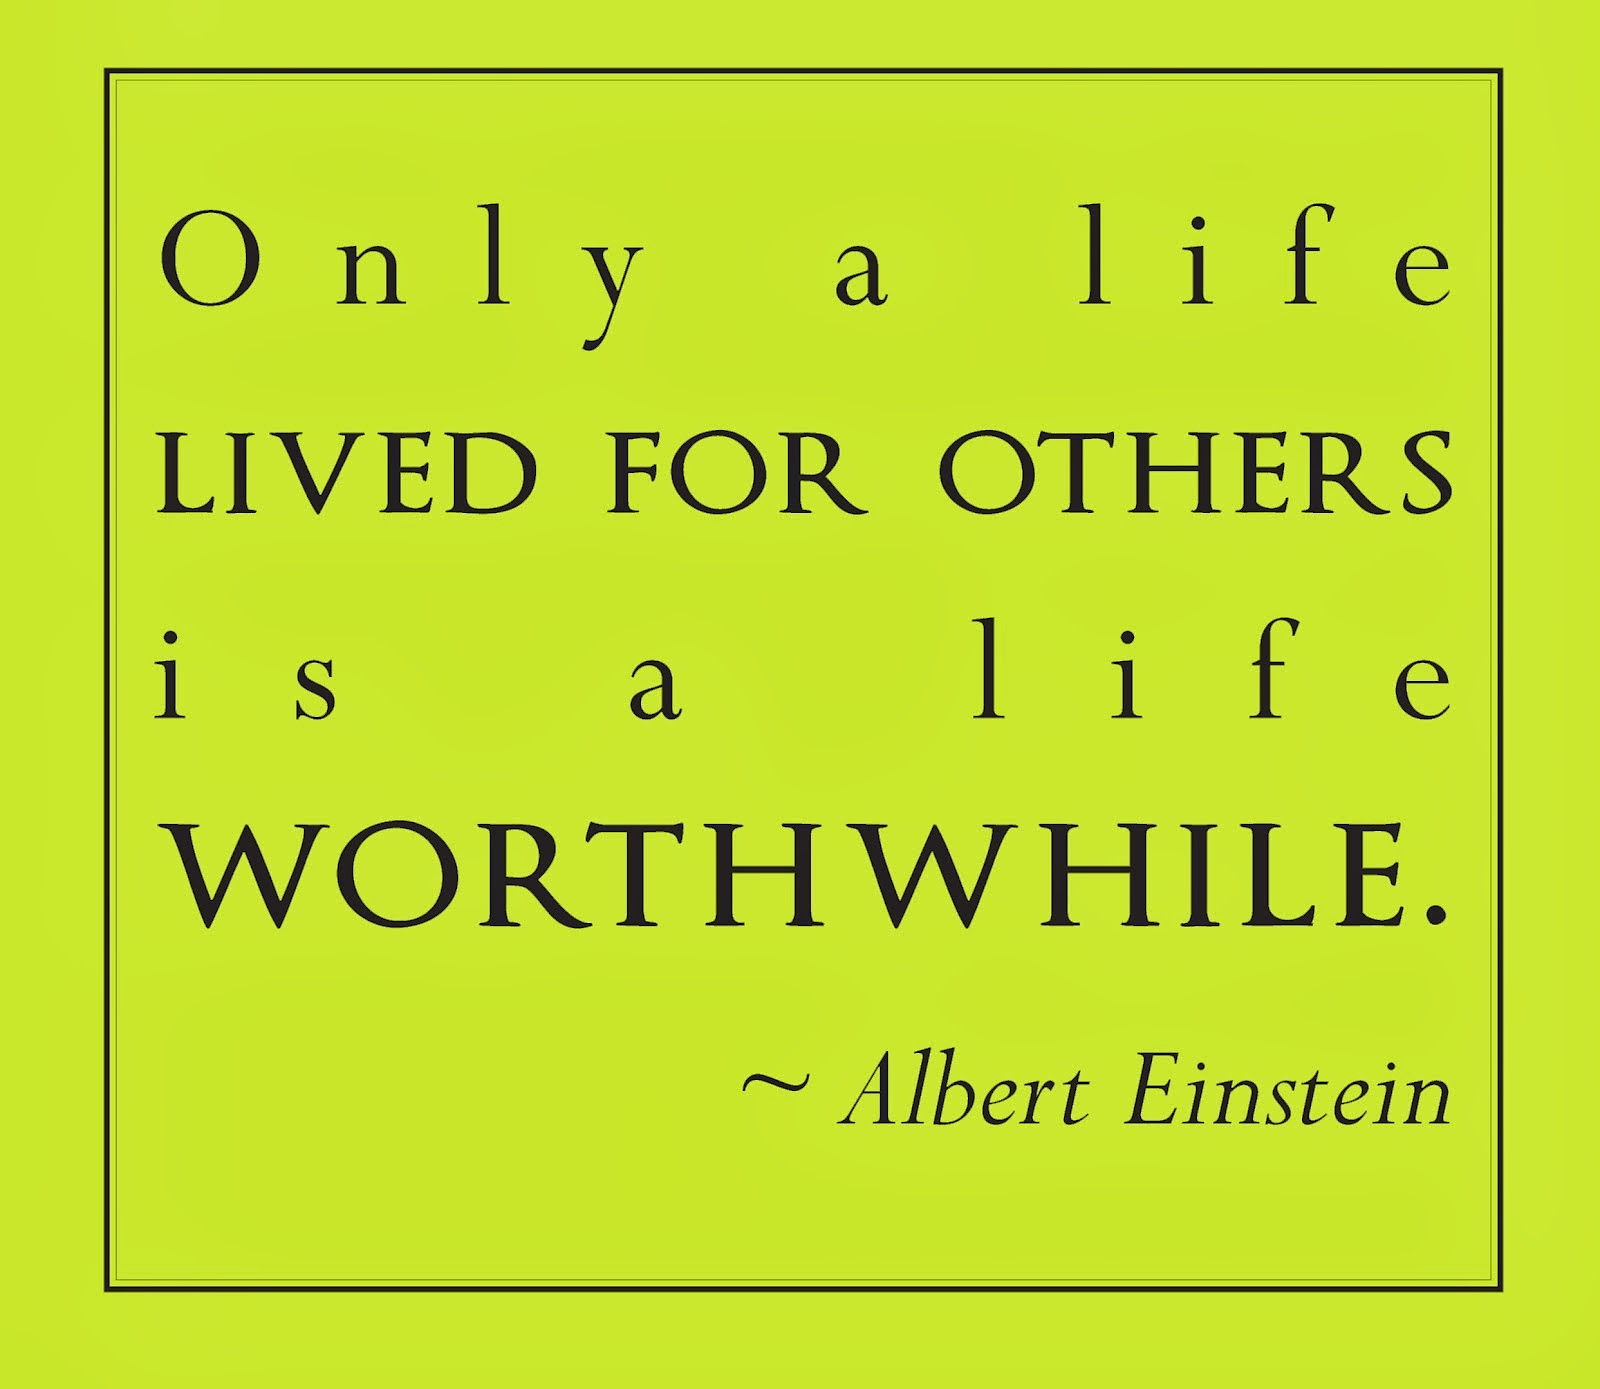 helping-others-quotes-einstein